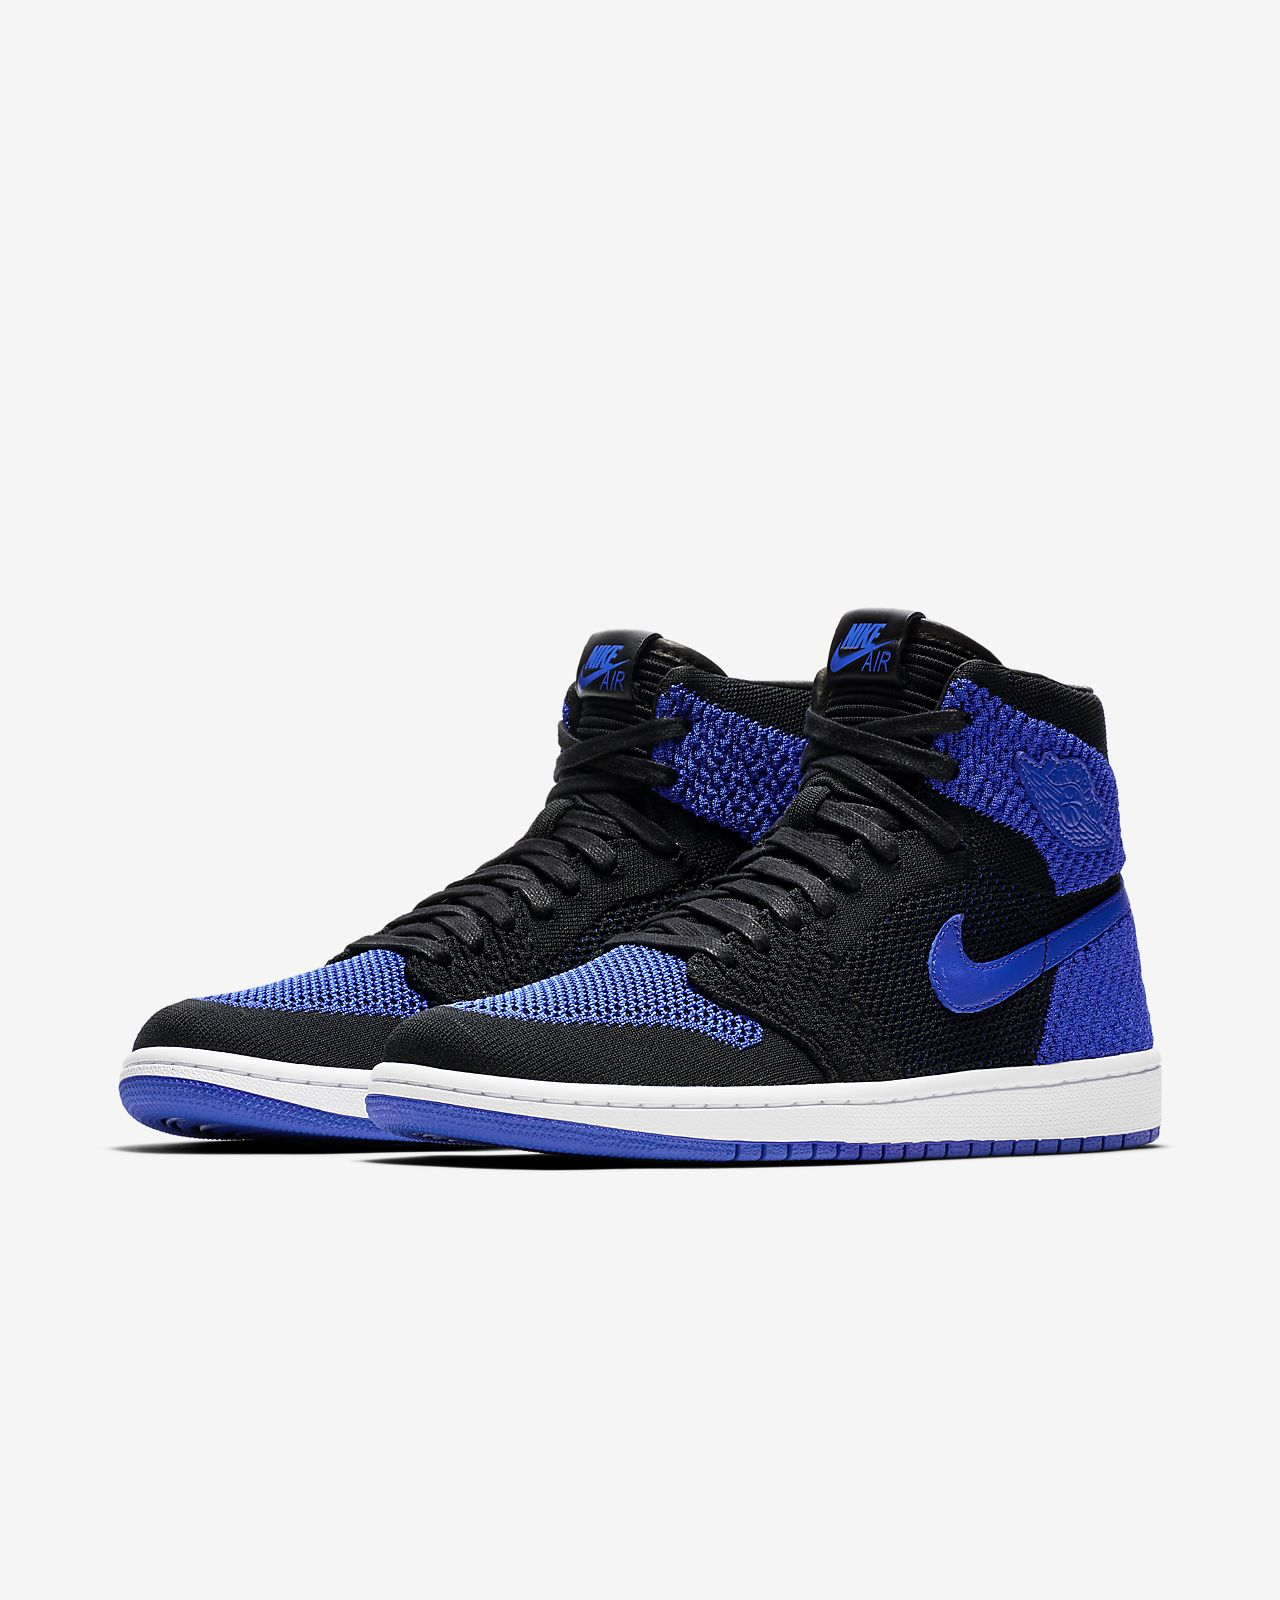 new product 2cb24 91693 ... Calzado para hombre Air Jordan 1 Retro High Flyknit